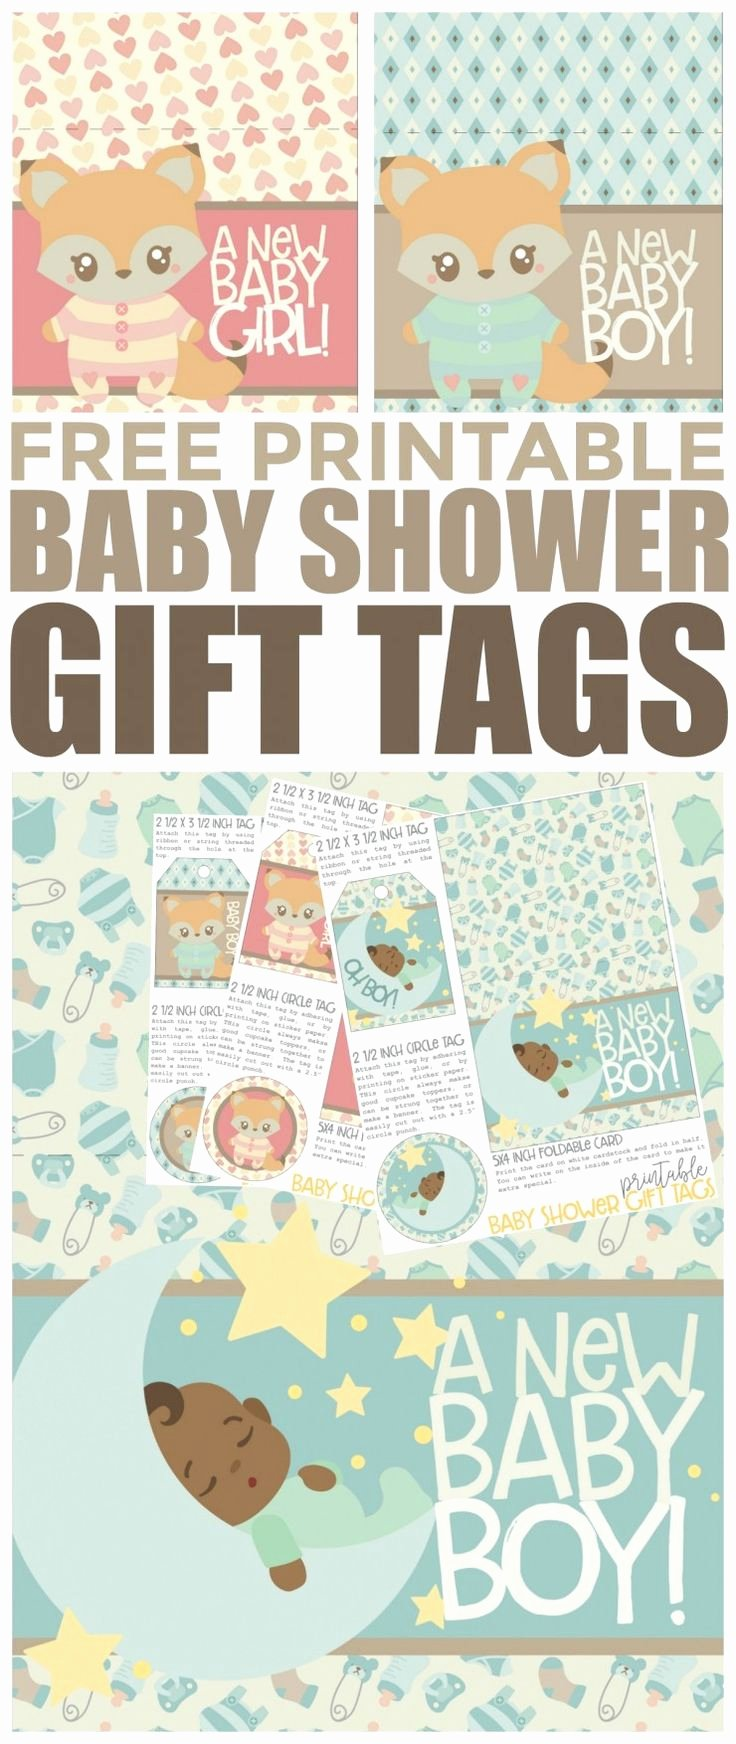 Baby Shower Gift Tags Printable Lovely 32 Best Storybook Baby Shower Images On Pinterest